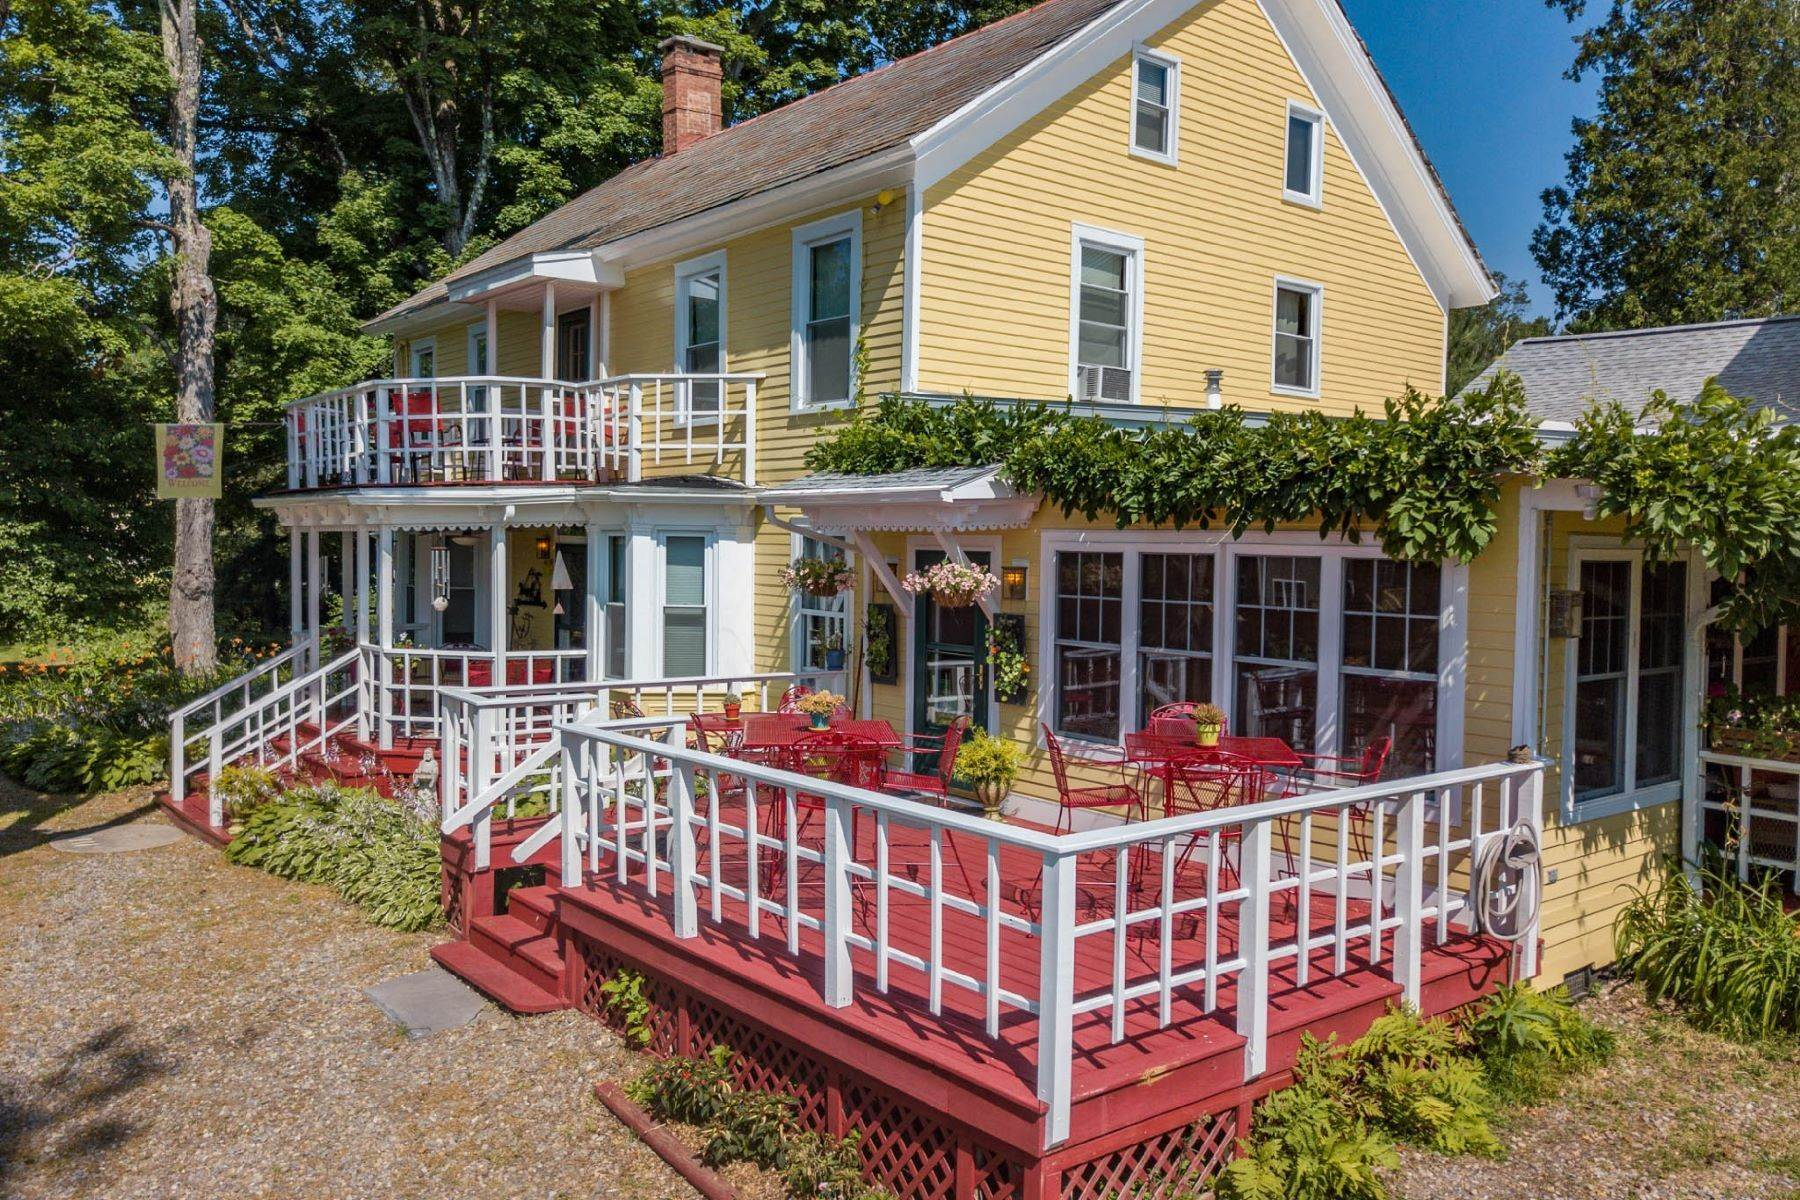 Single Family Homes for Sale at Saratoga Farmstead Bed and Breakfast 41A Locust Grove Rd Saratoga Springs, New York 12866 United States